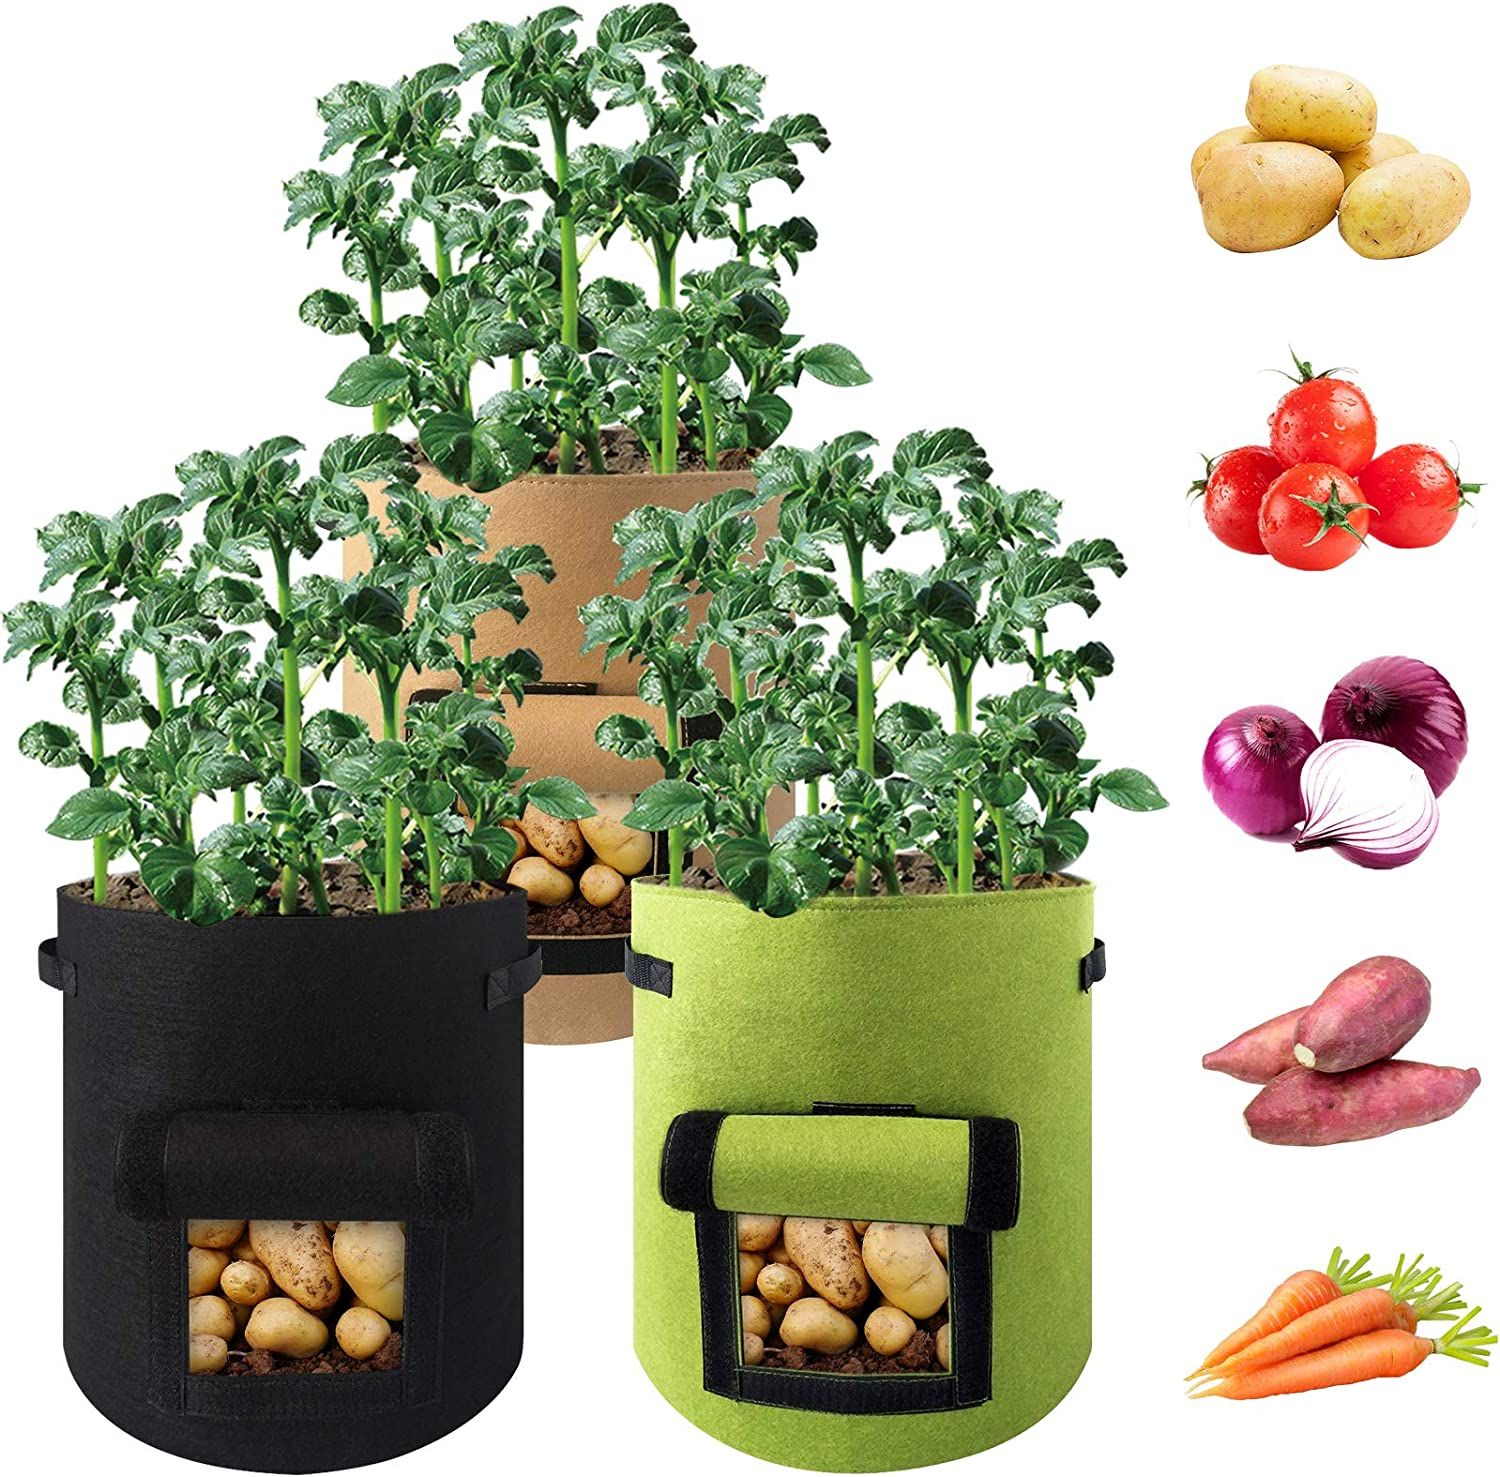 3 Pack 5 Gallon Potato Grow Bags Breathable Heavy Duty Nonwoven Vegetables Planter Pot Double Layer Aeration Fabric Plant Growing Container with Access Flap & Durable Handles for Garden Patio Balcony